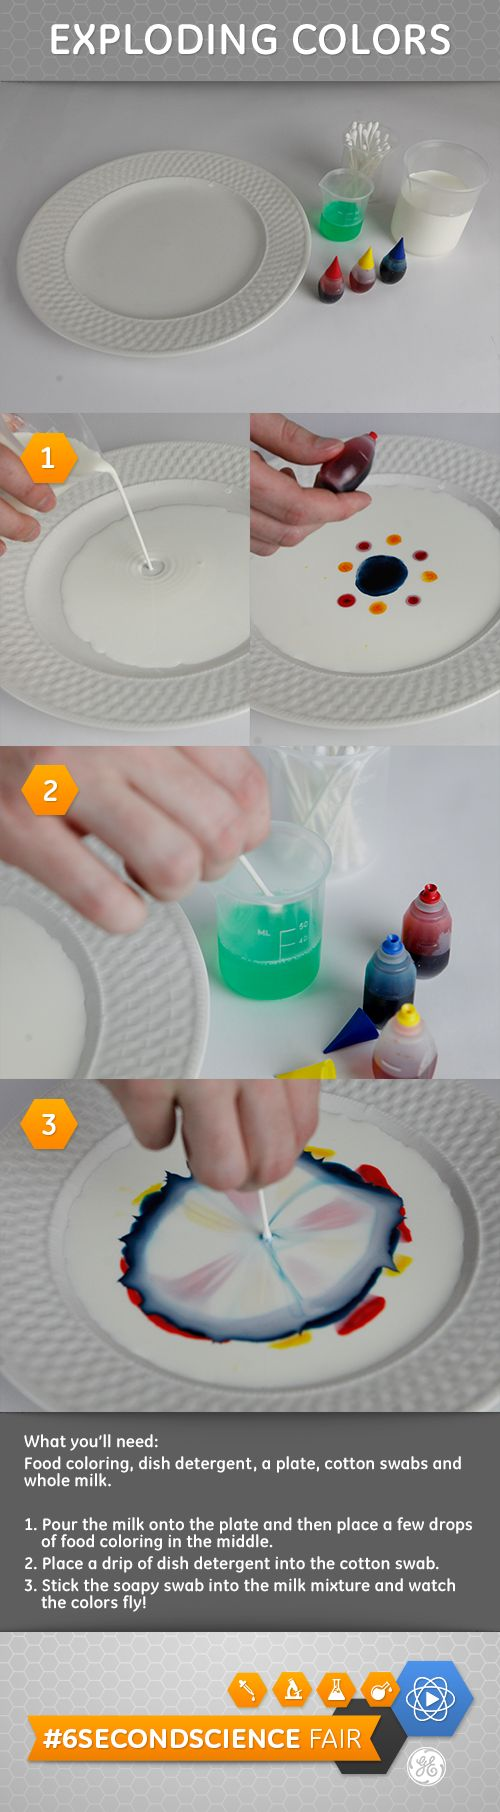 What happens when you combine milk, food coloring, and dish soap? #DIY #6SecondScience